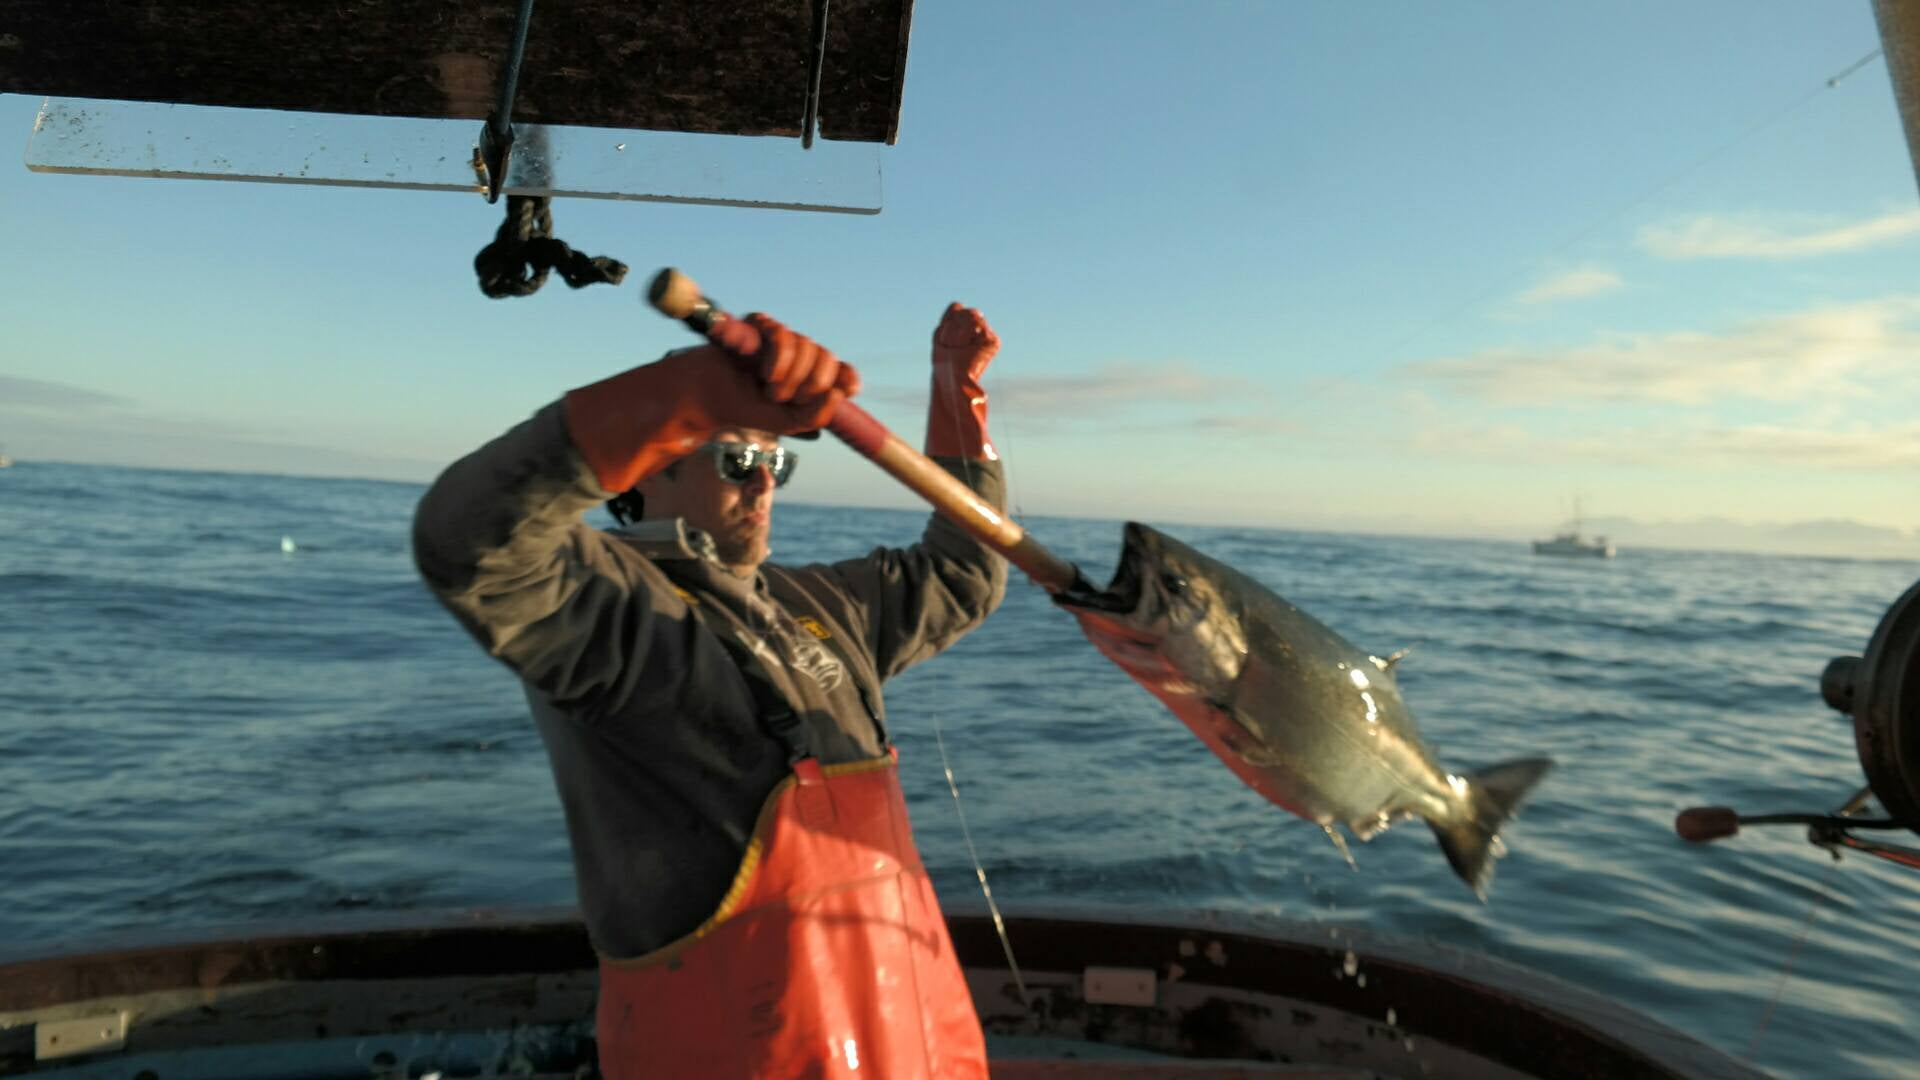 Jeff, catching salmon